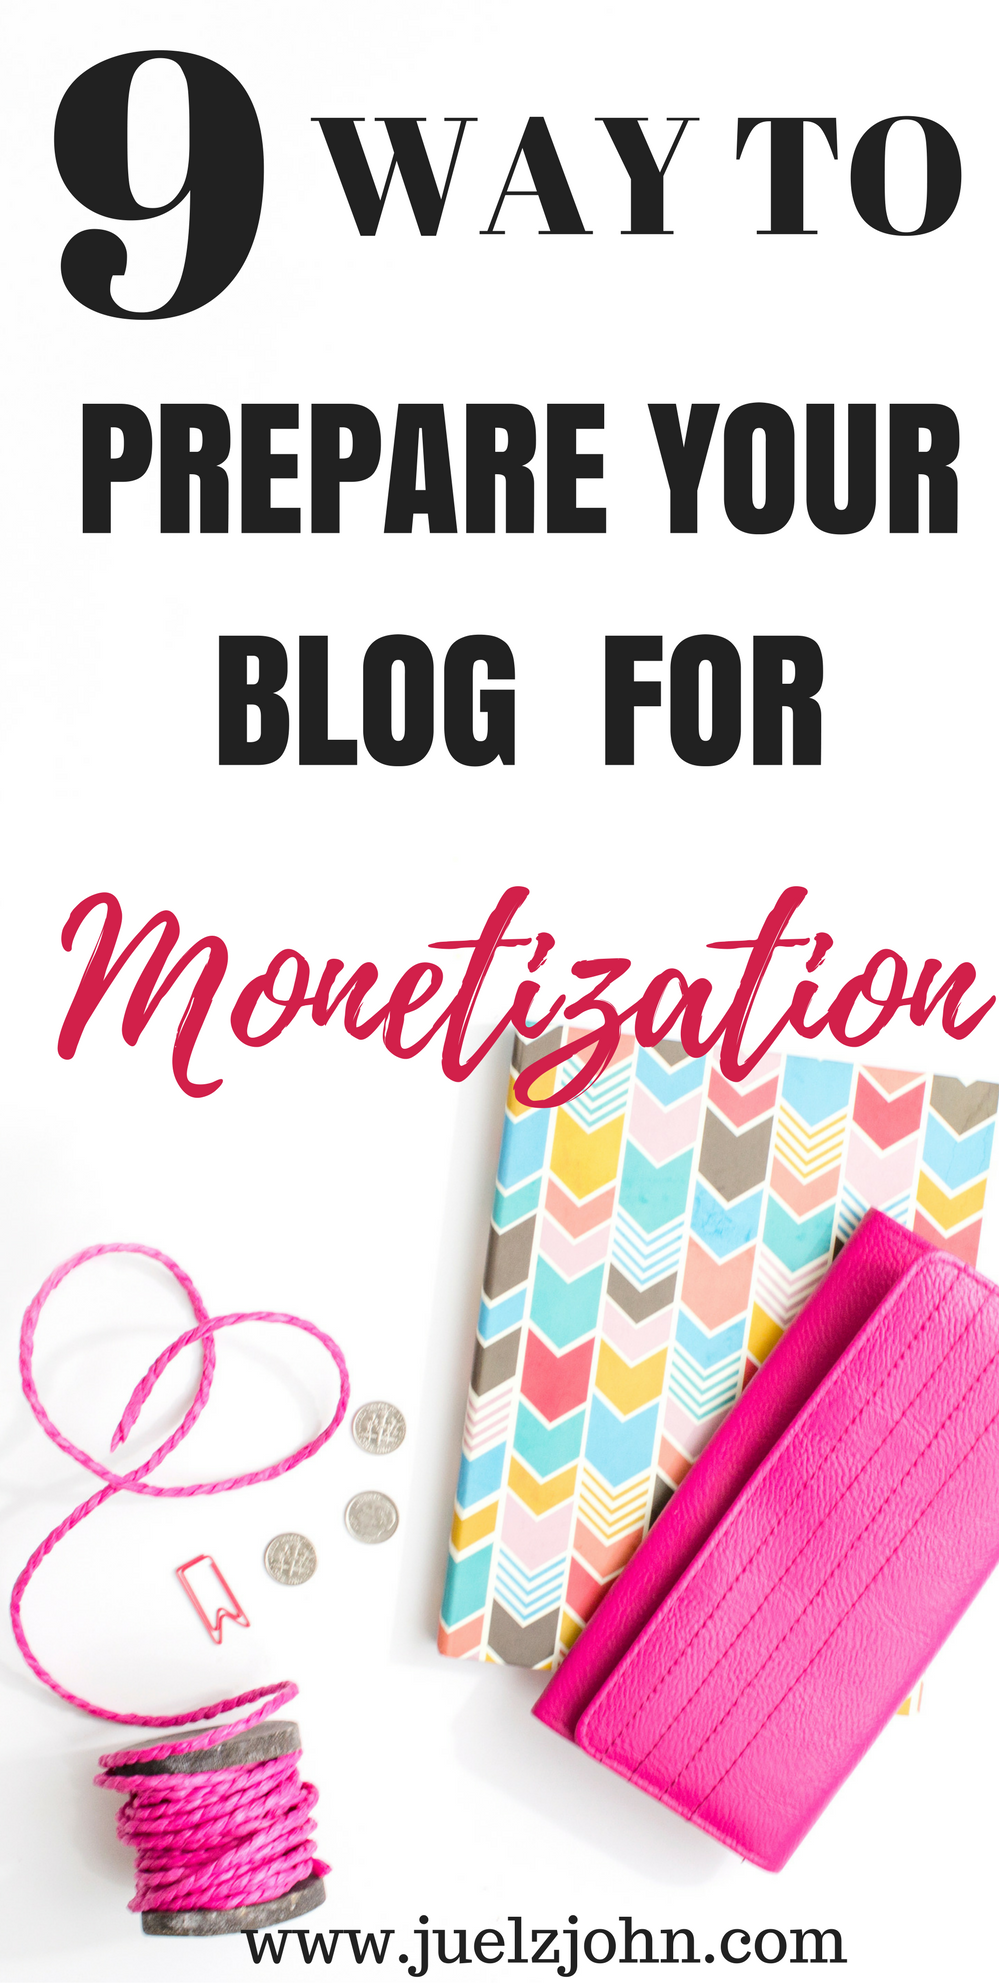 9 things to do before you monetize your blog www.juelzjohn.com